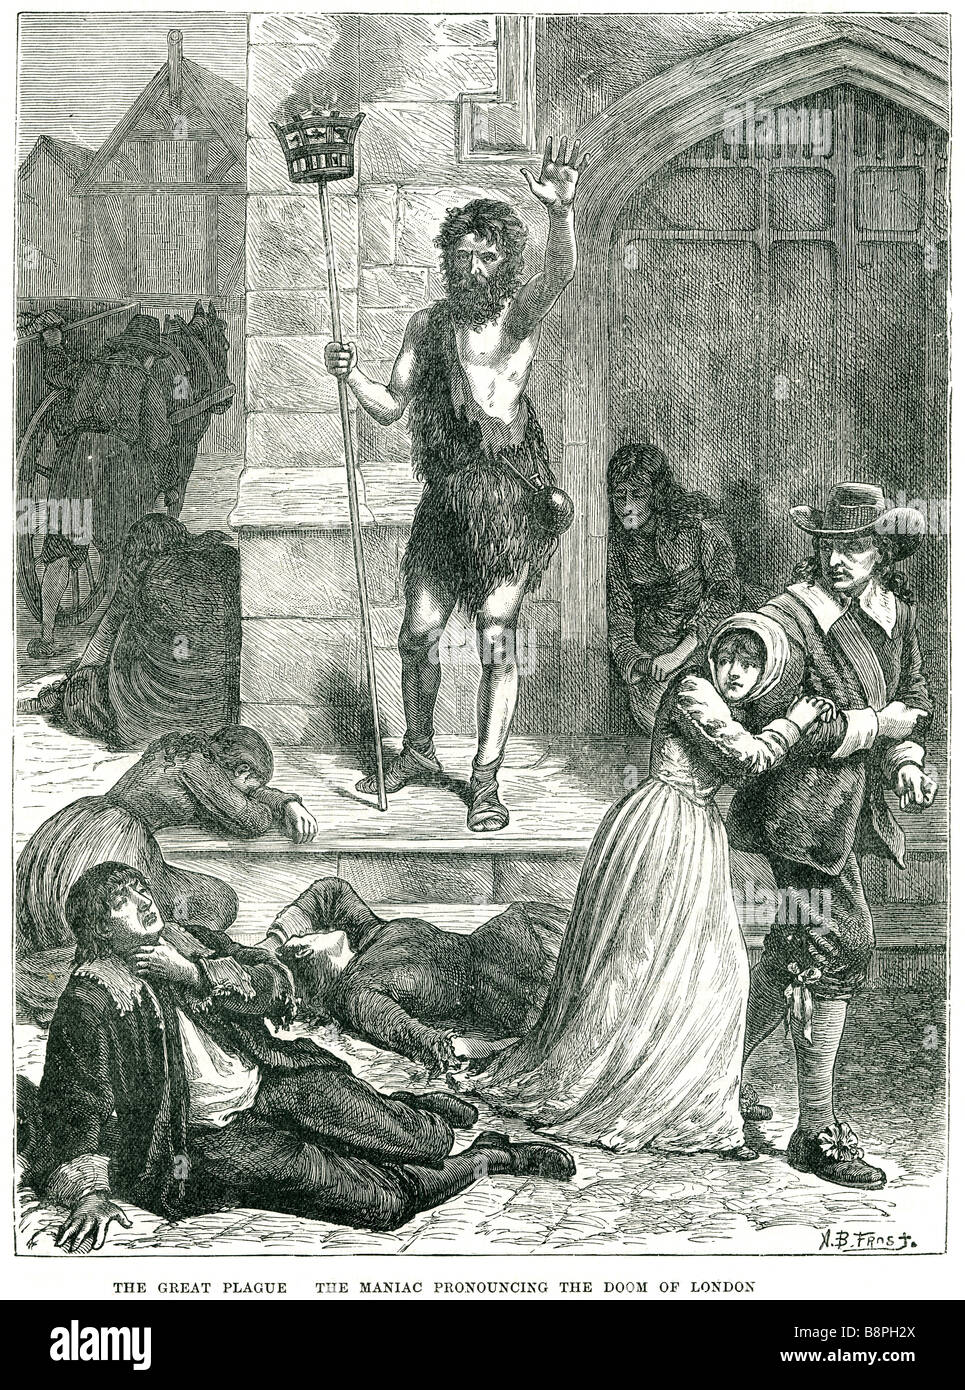 the great plague the maniac pronouncing the doom of london preaching death illness disease street square period - Stock Image